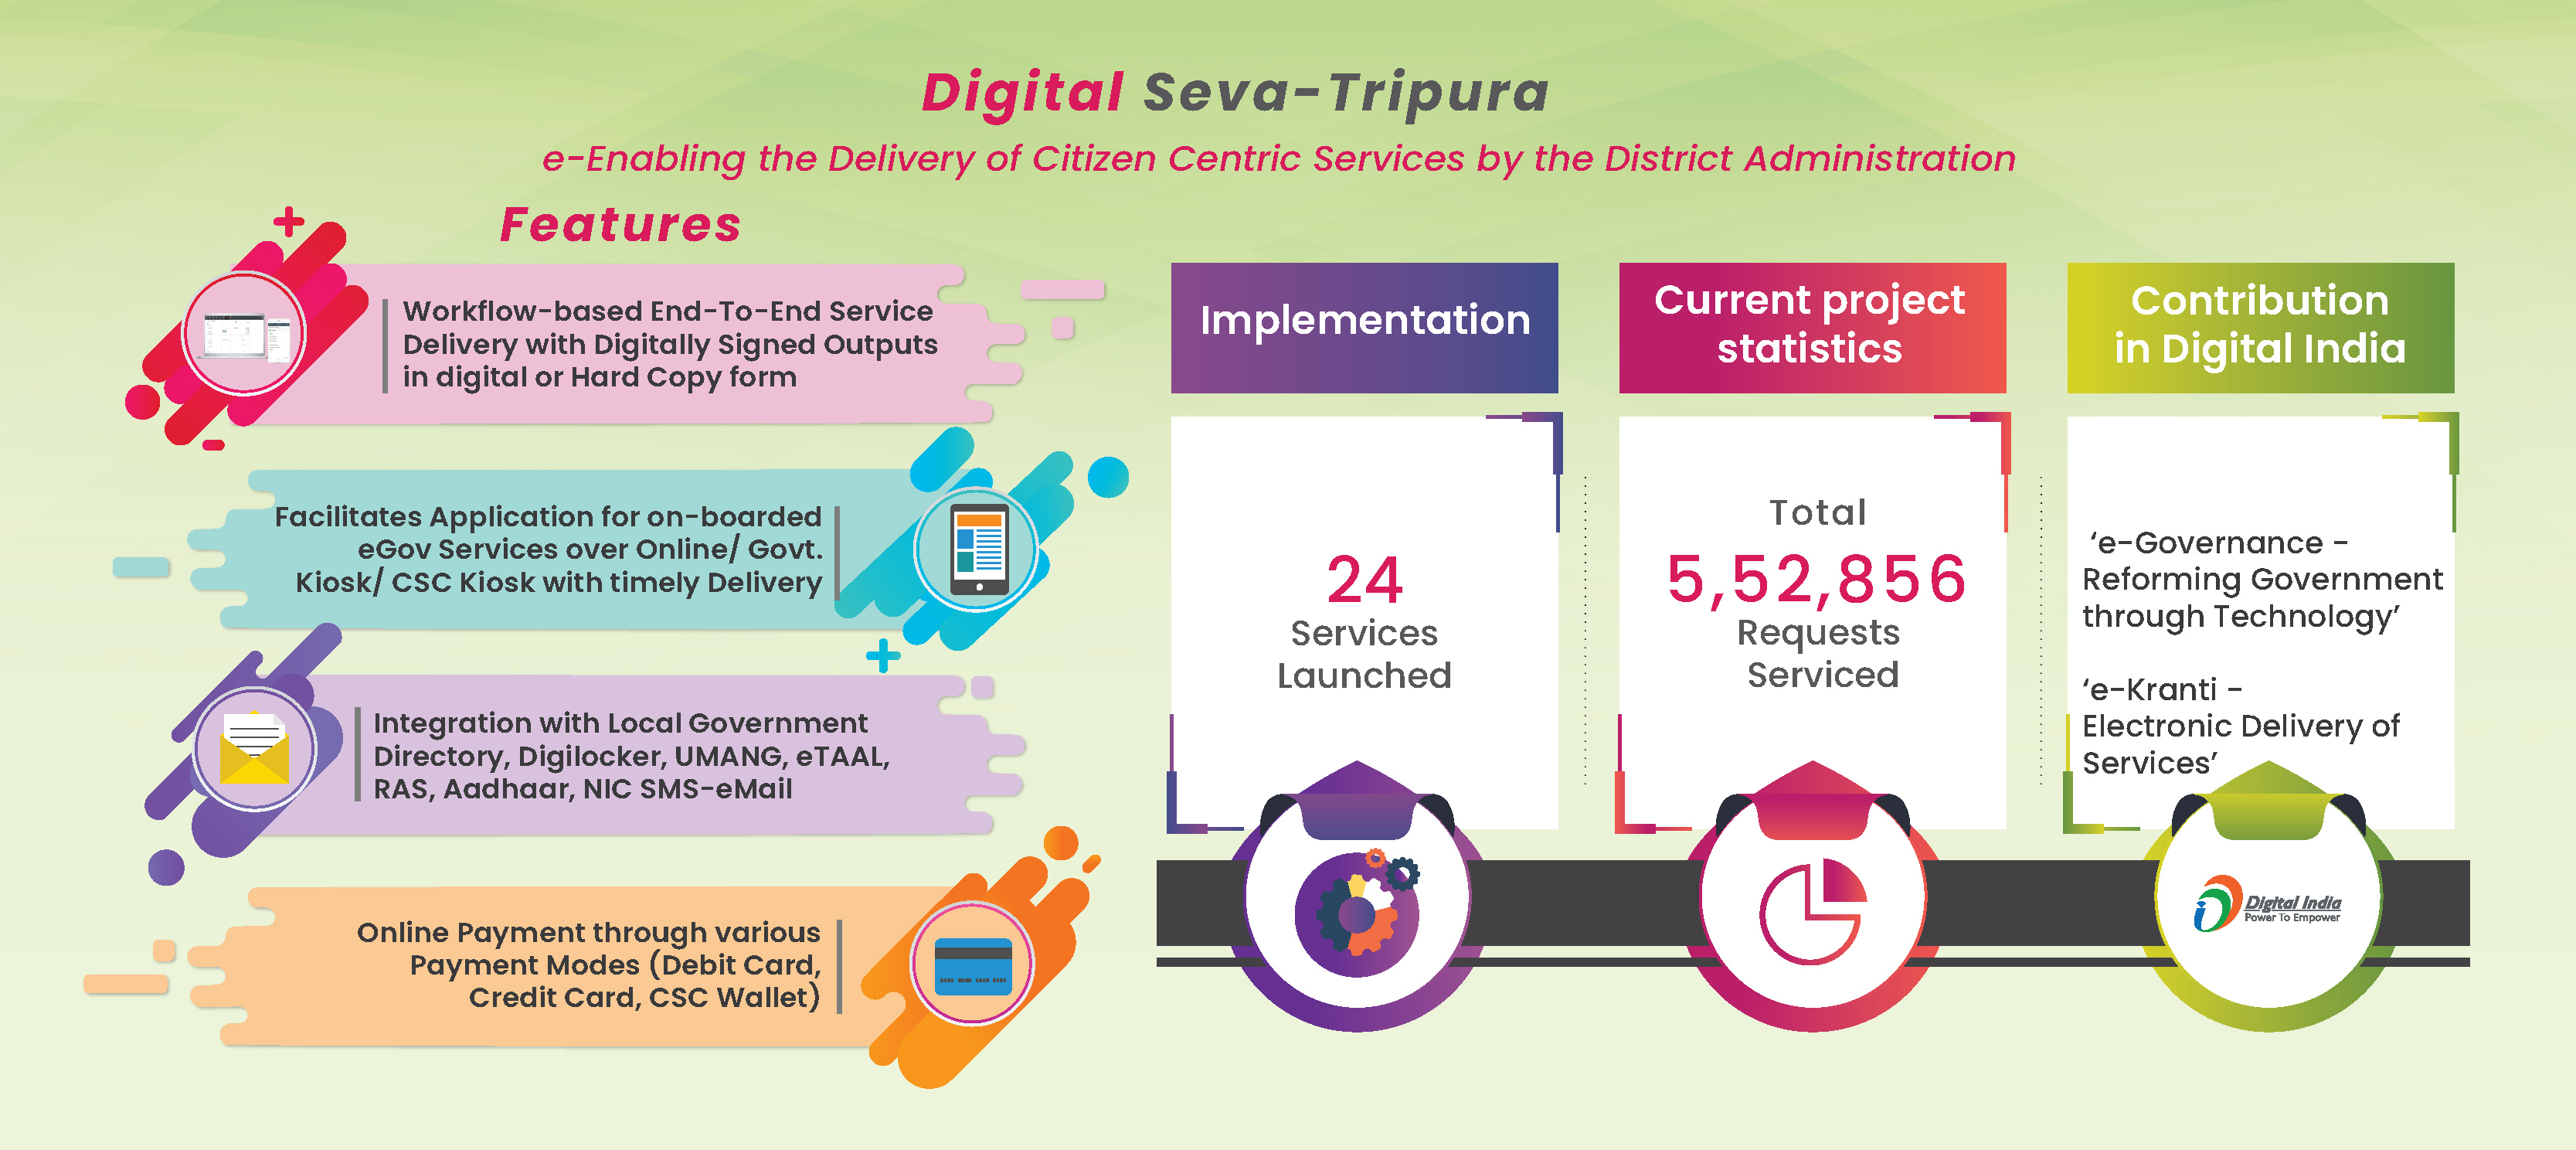 Image of Digital Seva-Tripura e-Enabling the Delivery of Citizen Centric Services